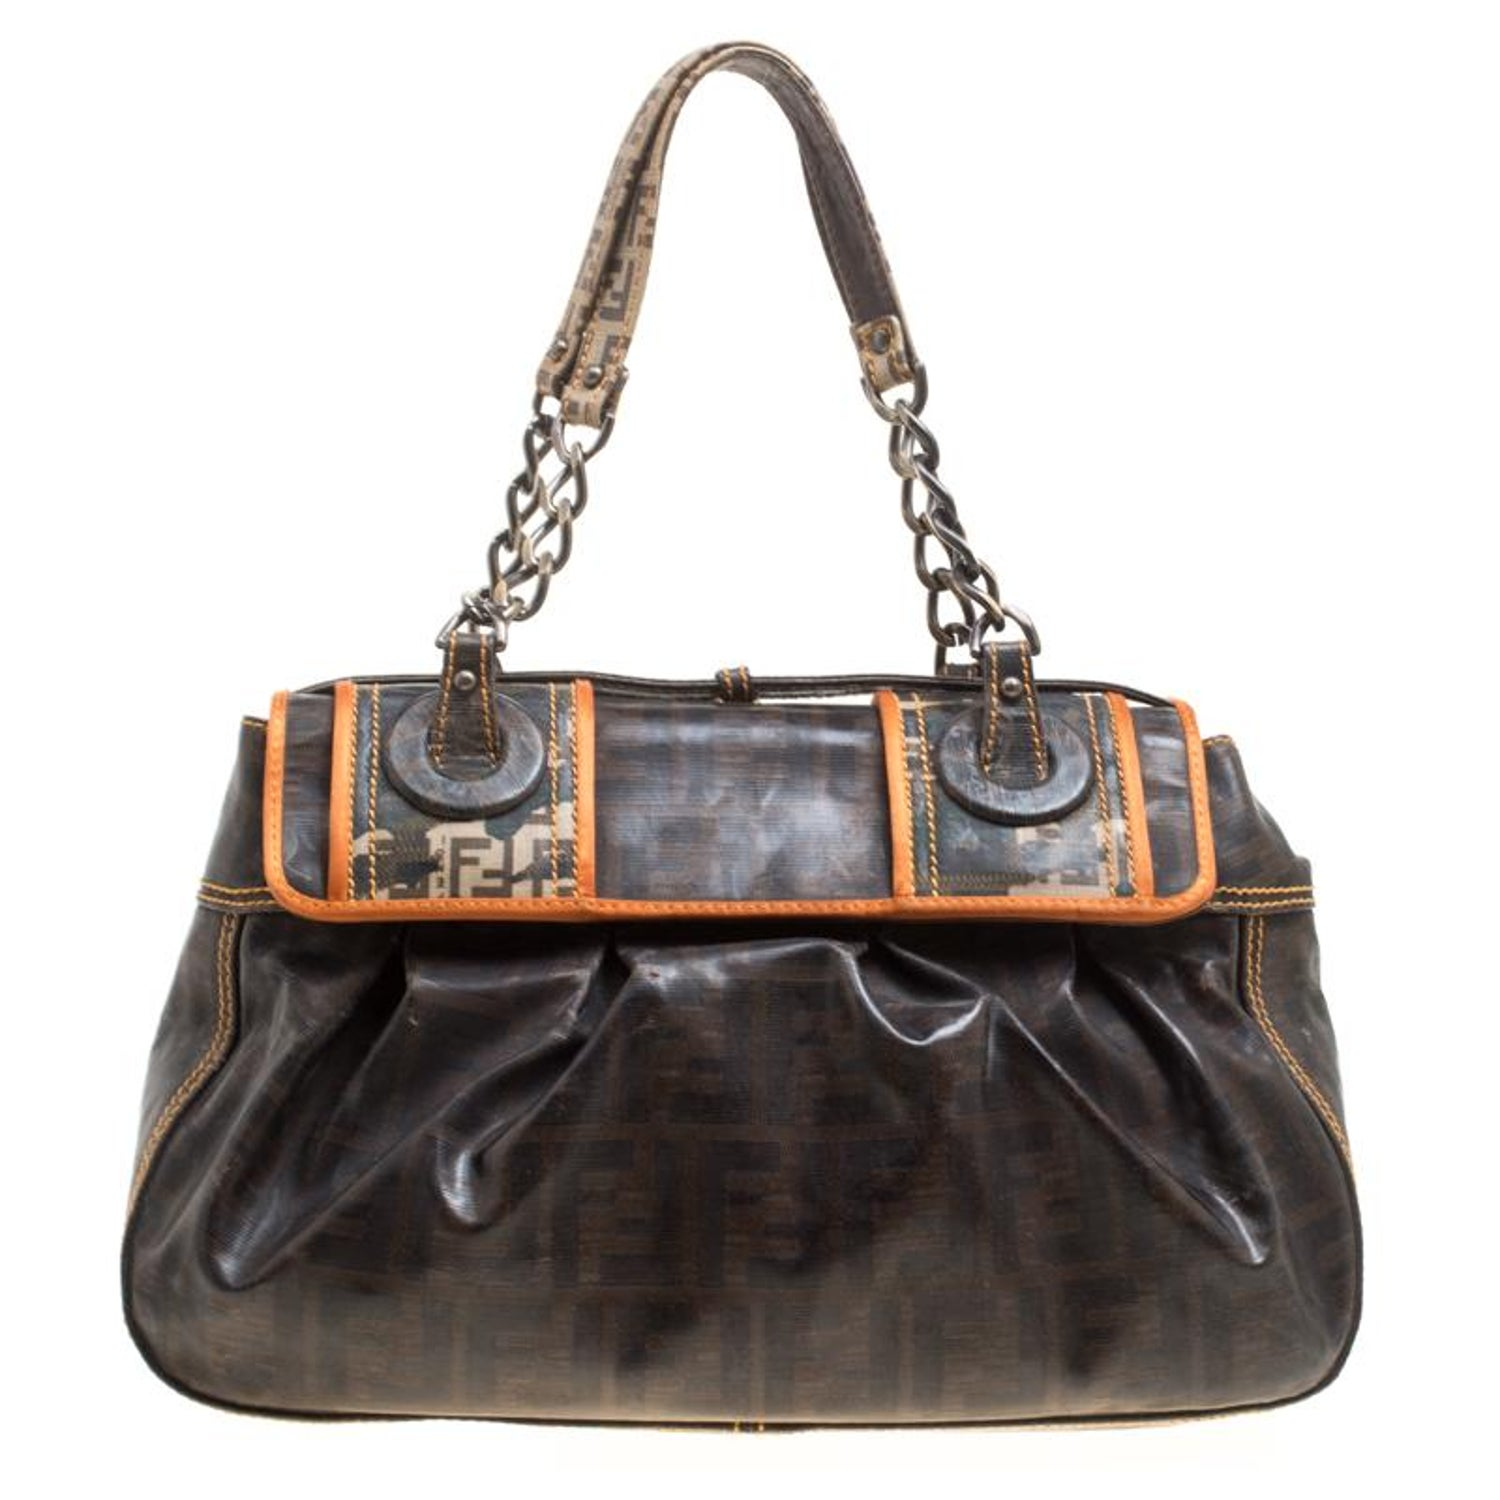 26947d41463b Fendi Brown Zucca Coated Canvas B Bag For Sale at 1stdibs